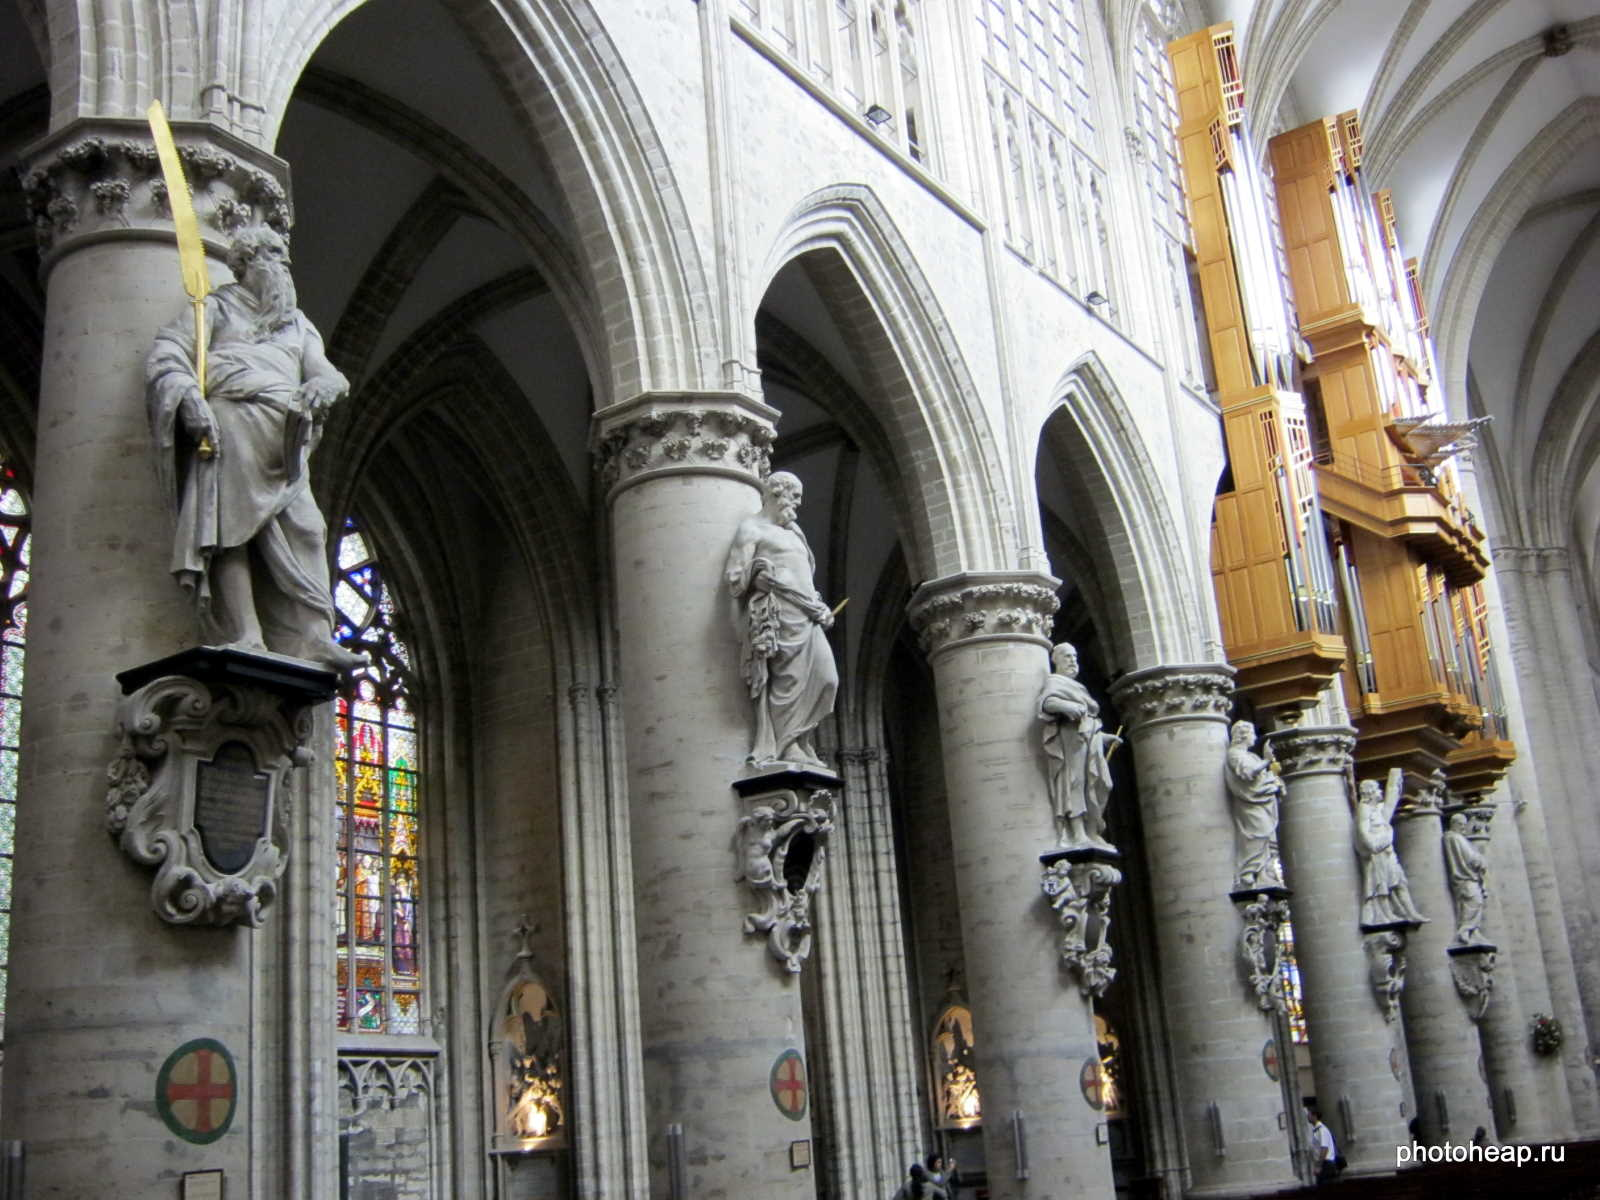 Brussels - church statues